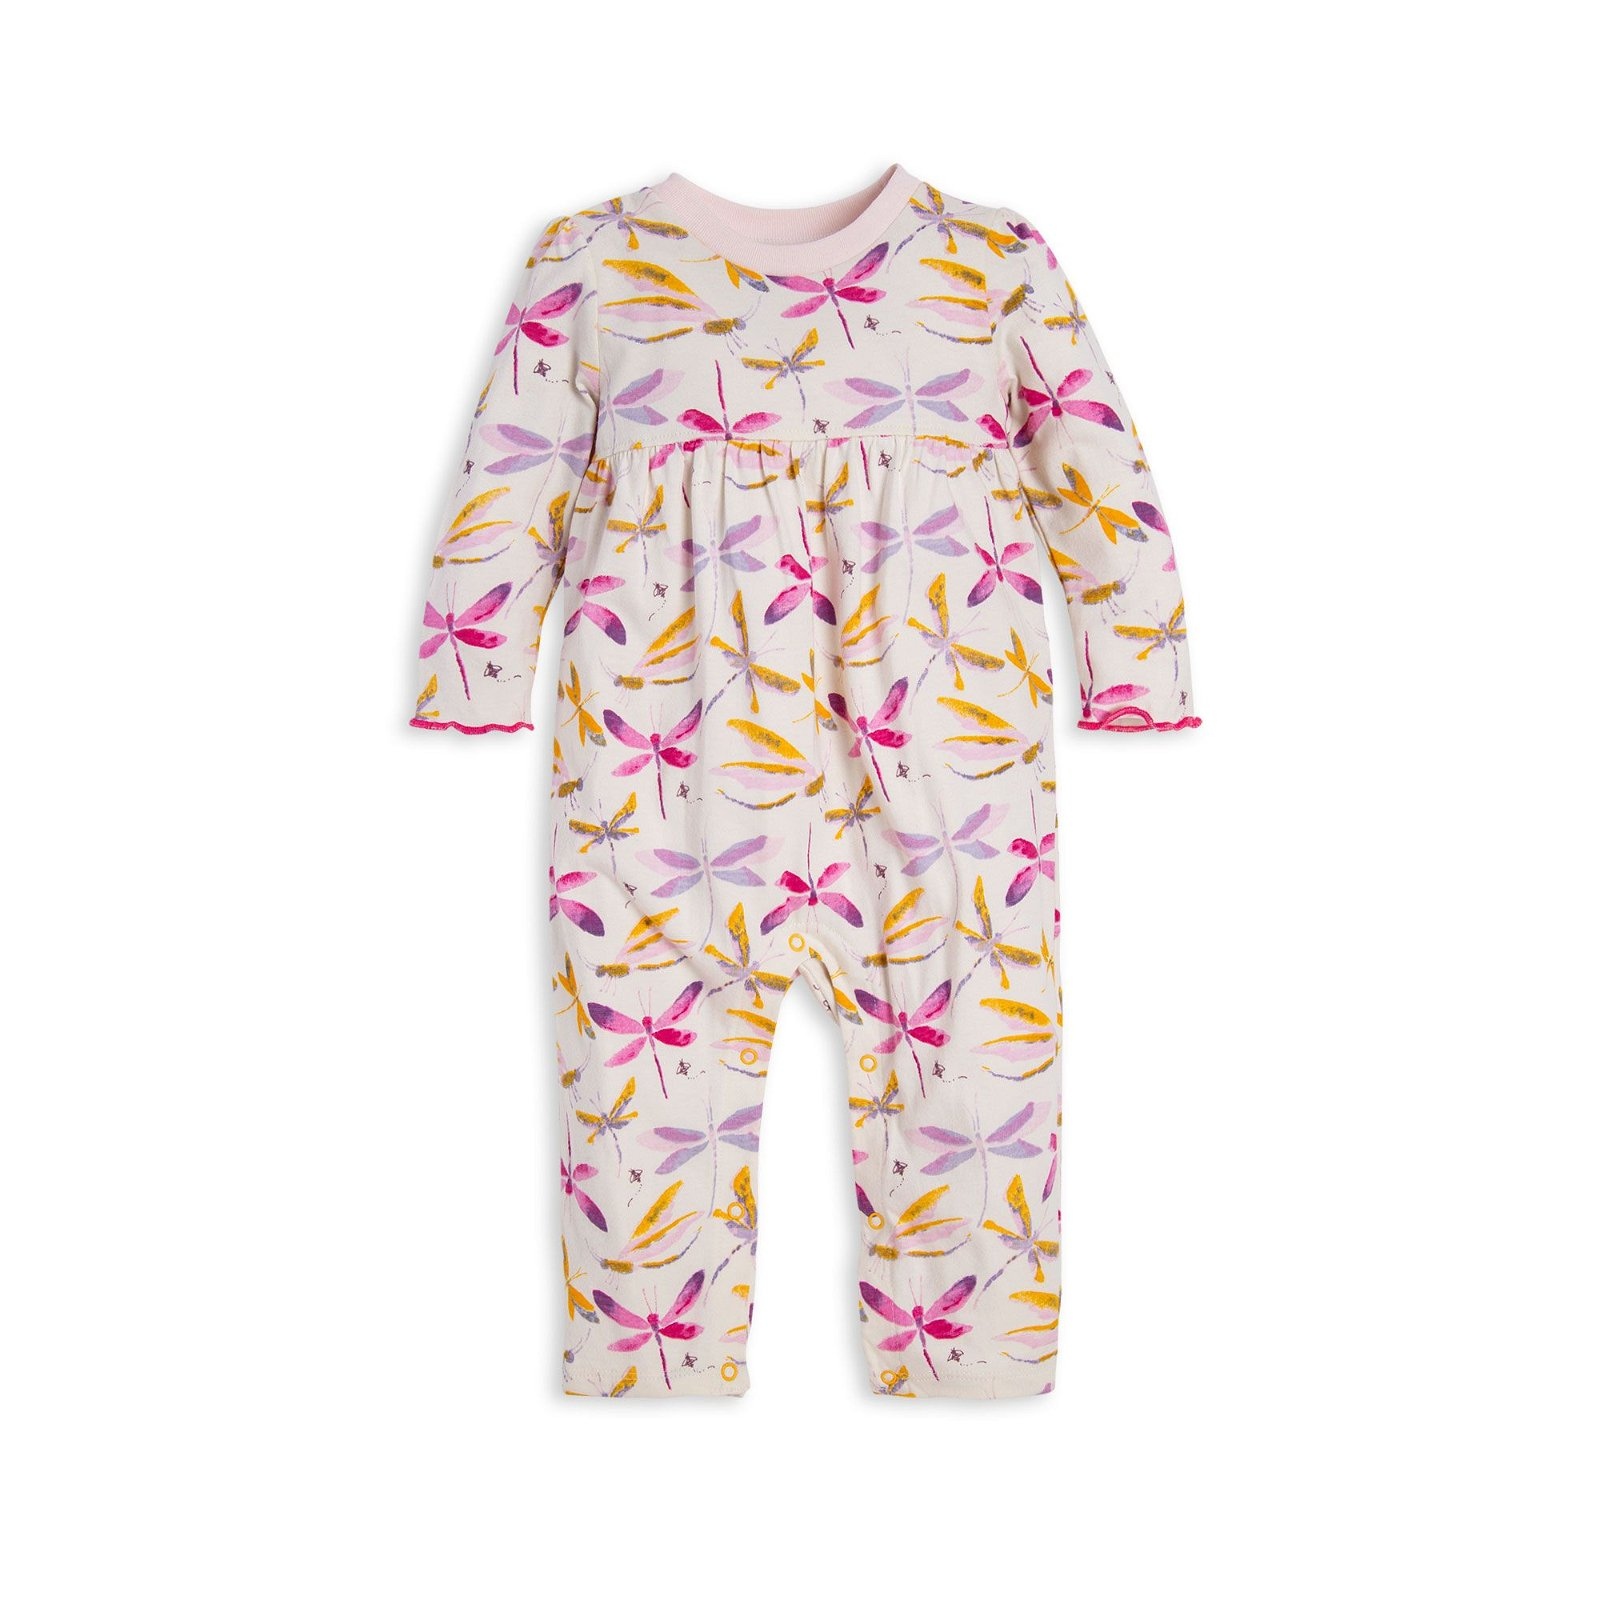 Autumn Sky Dragonfly Organic Baby Jumpsuit